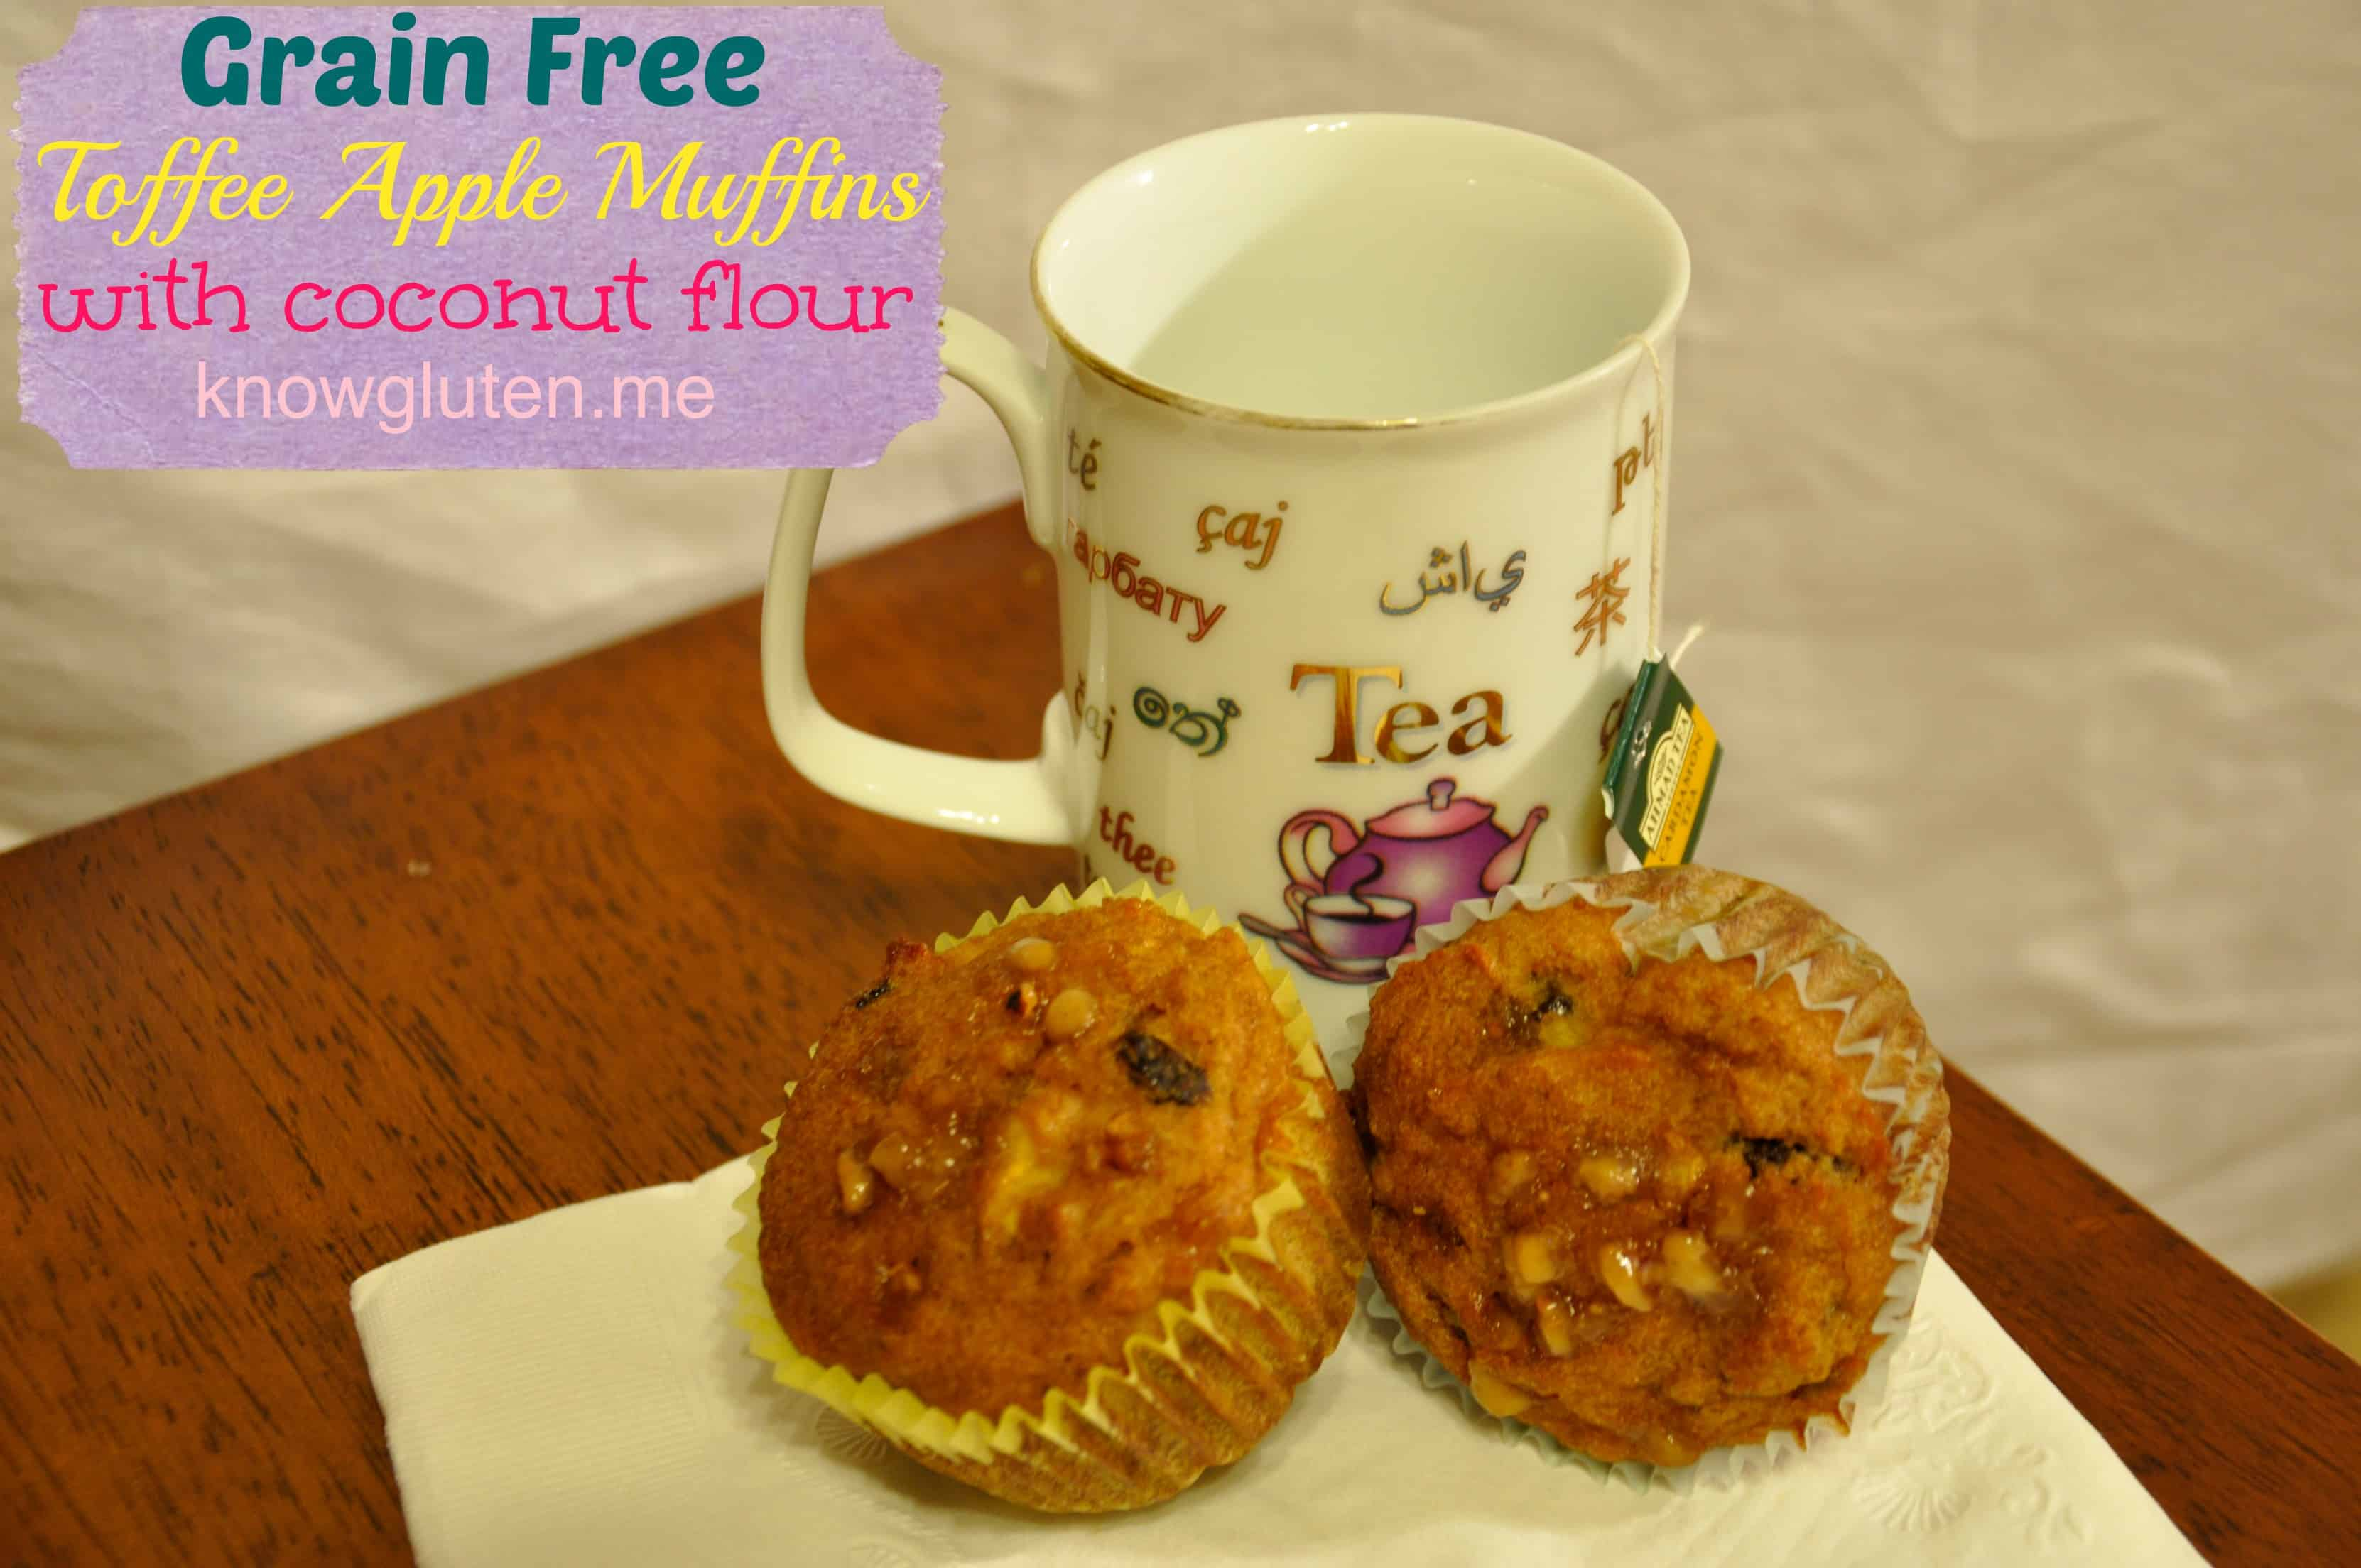 Grain Free Toffee Apple Muffins with Coconut Flour from Knowgluten.me